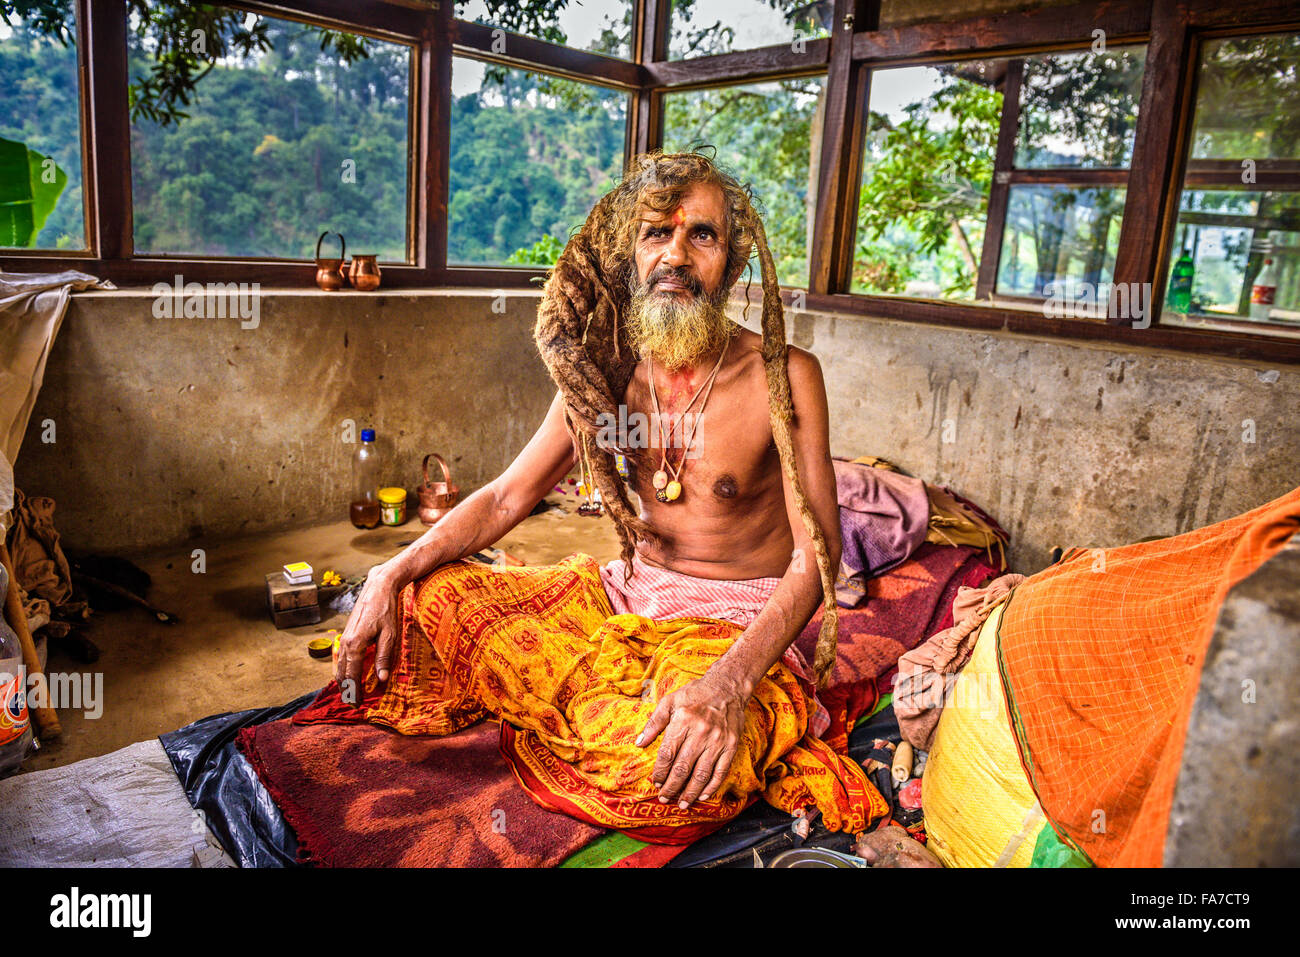 Sadhu baba  (holy man) with traditional long hair meditates in a temple - Stock Image